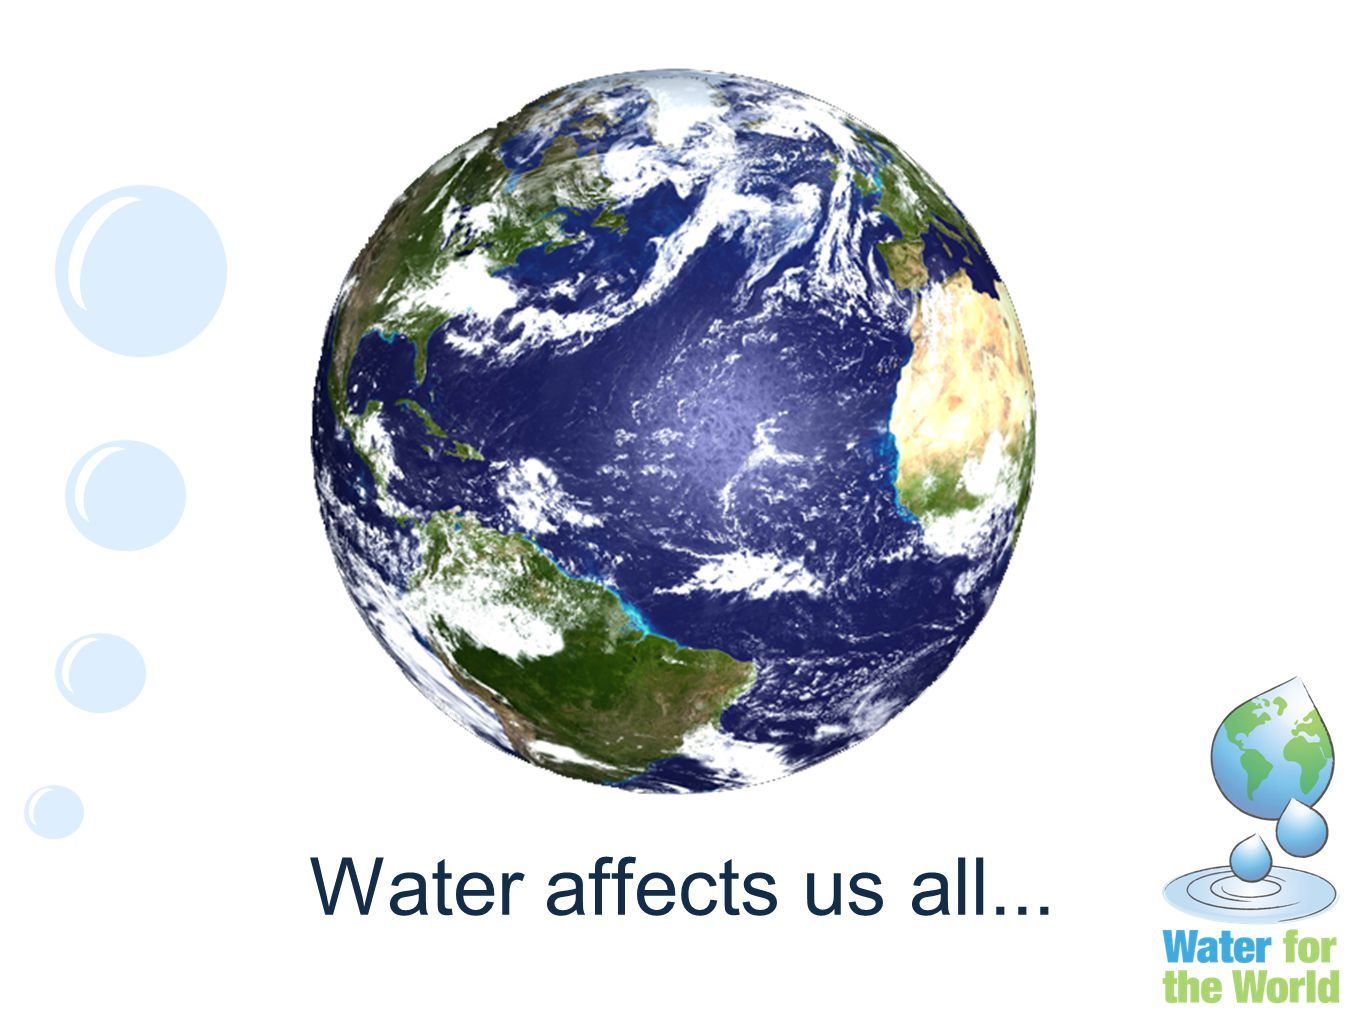 Water affects us all...